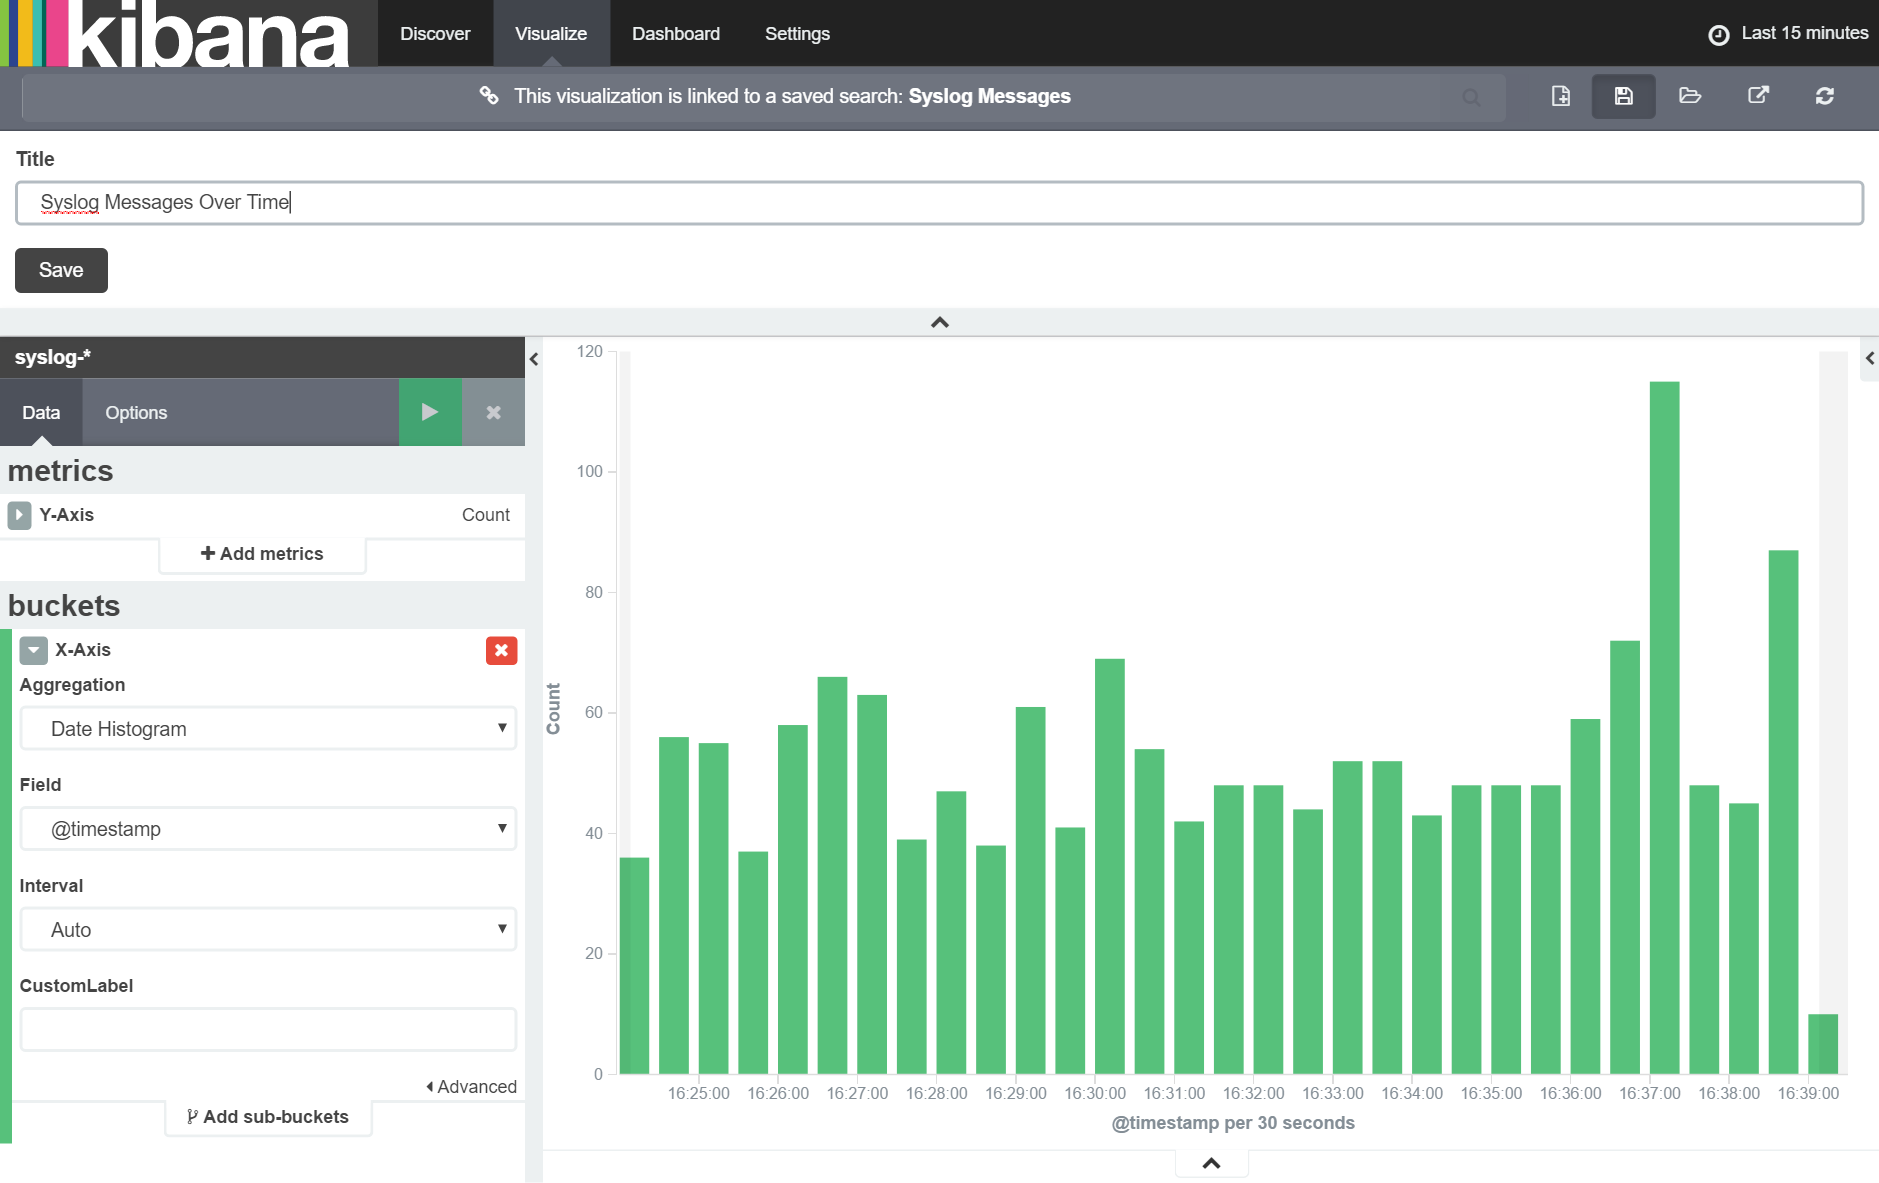 Kibana Visualise Save Syslog Messages Over Time